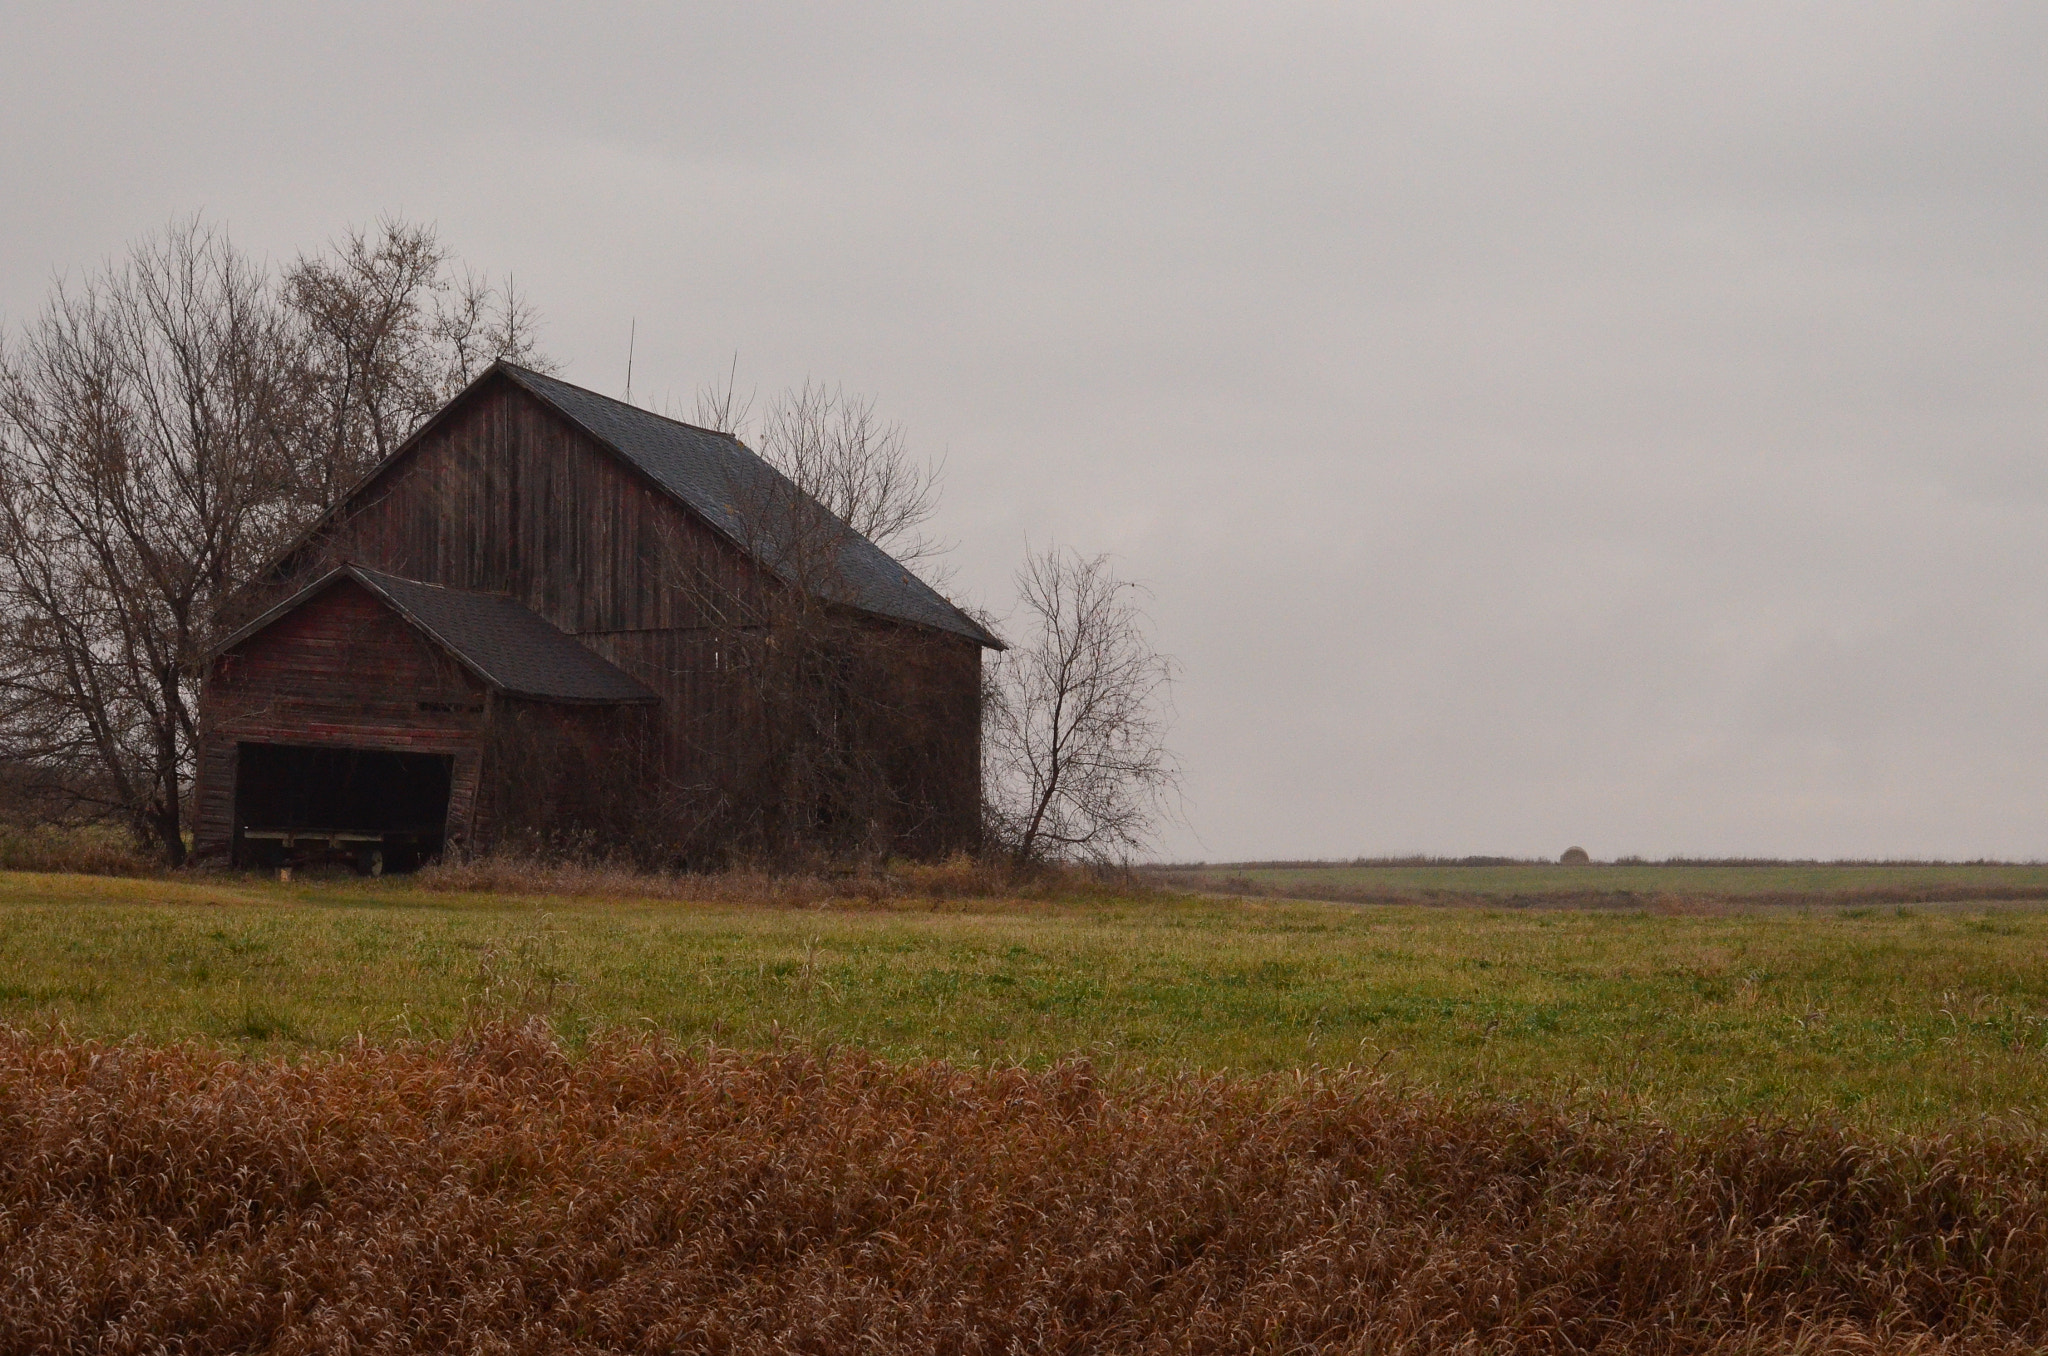 Photograph Prairie Shack by Atomic Triptych on 500px